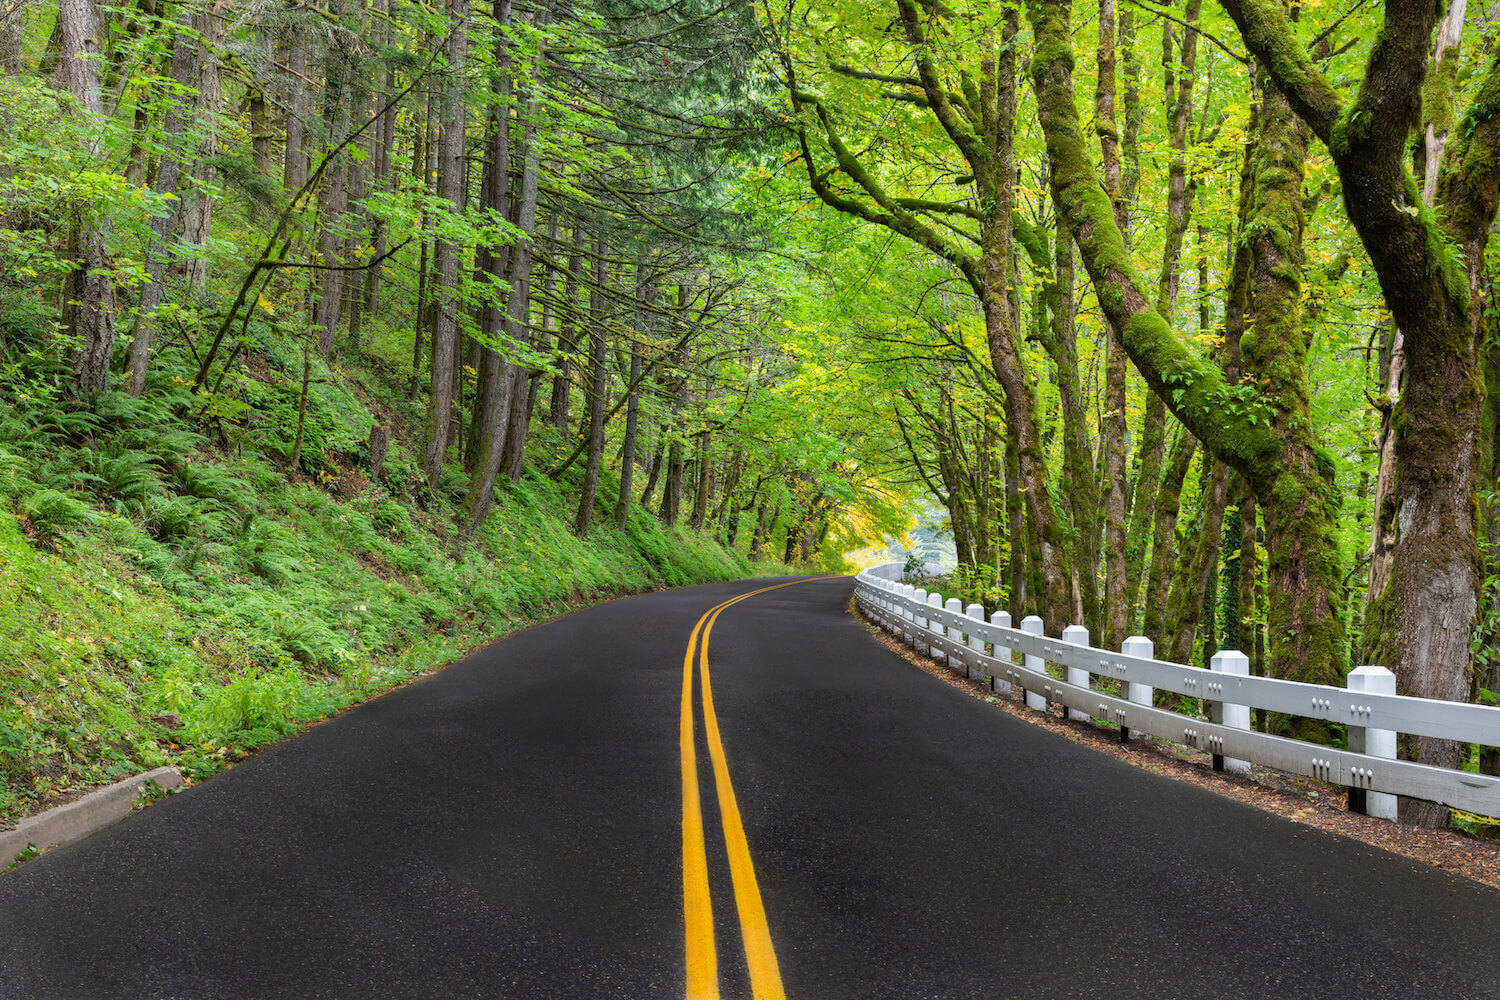 A wooded section of the historic Columbia River Highway which winds along the gorge in Oregon. This pavement road has a double yellow line in the center and the signature white painted wood guardrails from the 1920's add a bit of nostalgia to the scene.